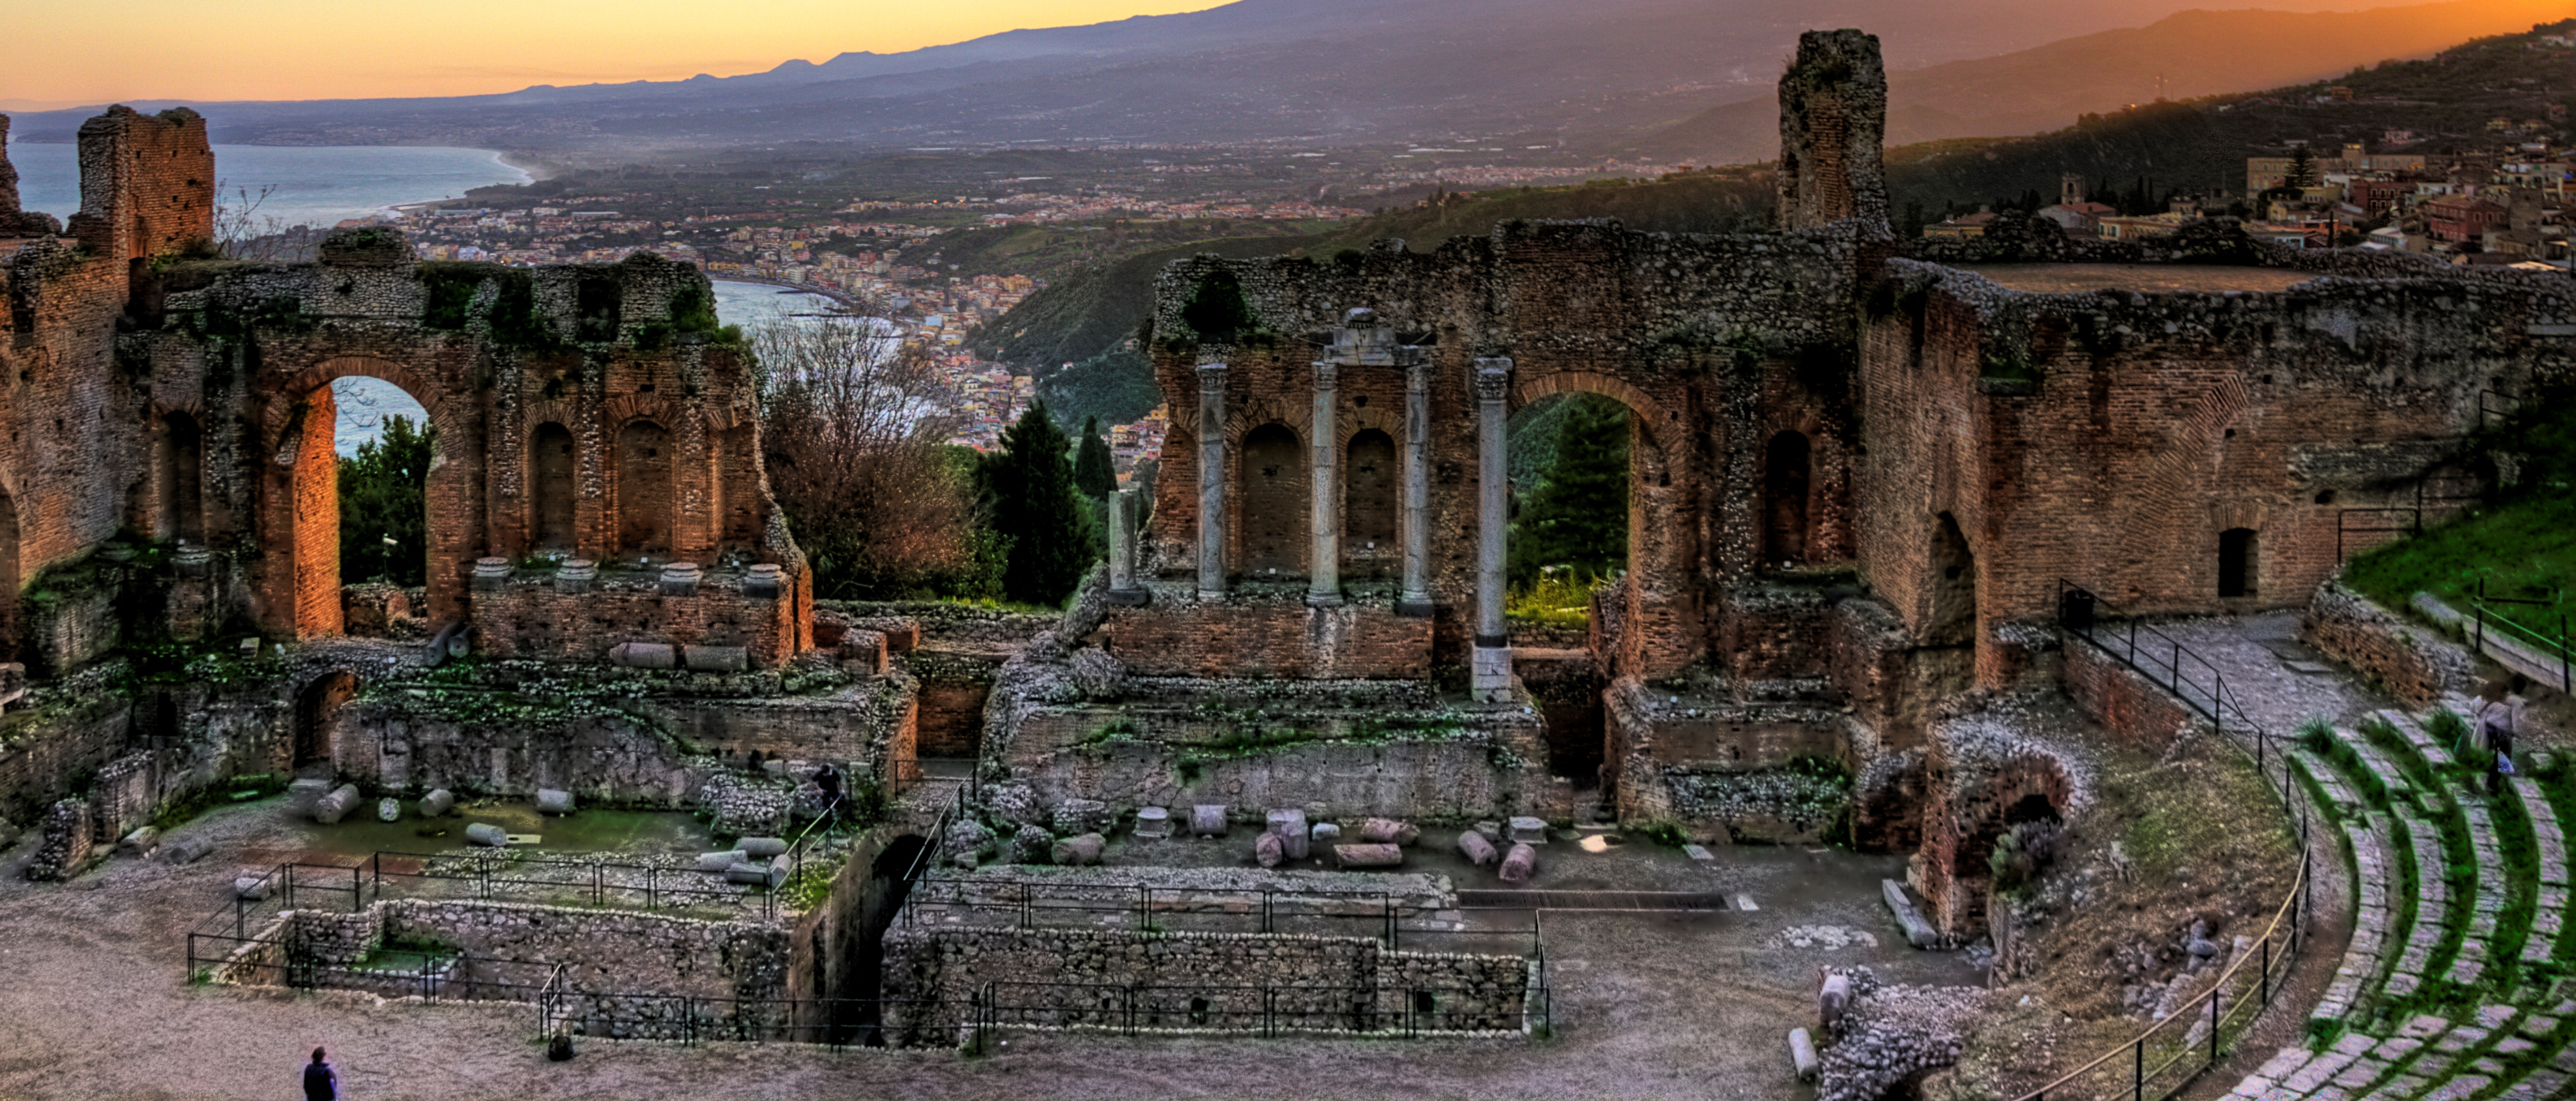 Taormina, Sicily, which will host this year's G7 summit. (Flickr/mariocutroneo)